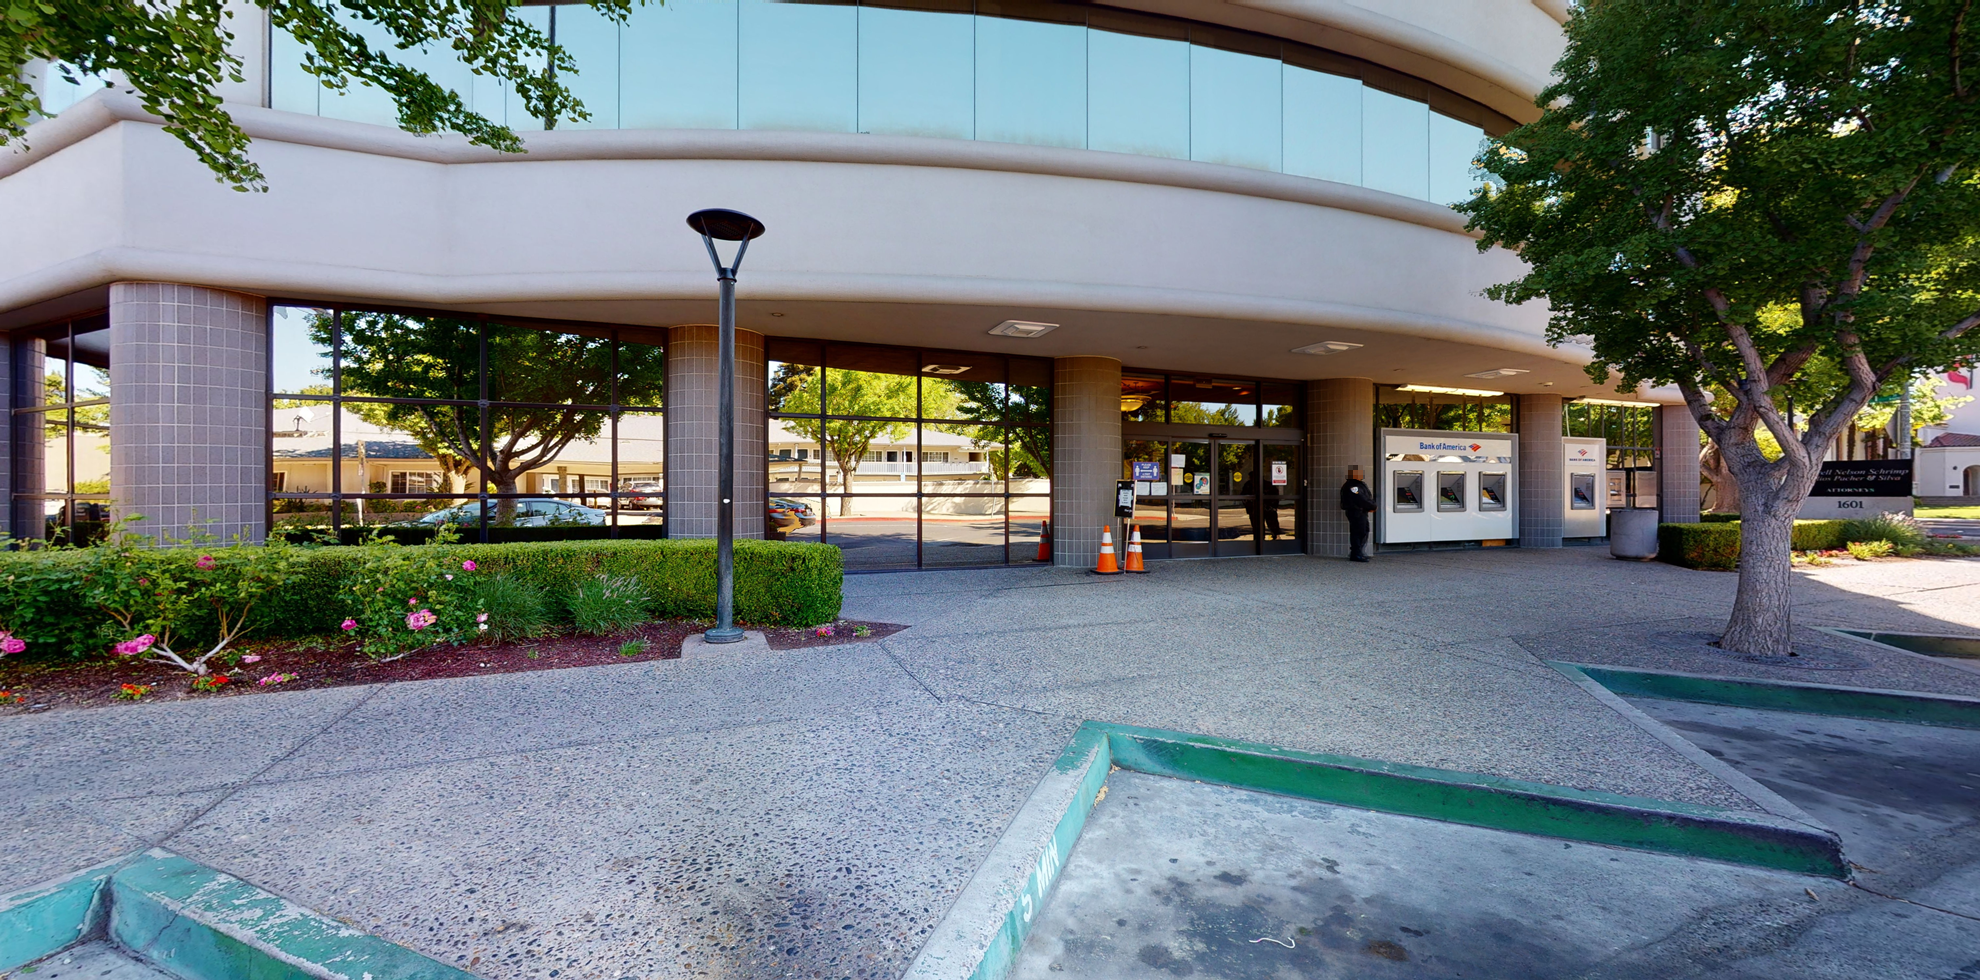 Bank of America financial center with walk-up ATM | 1601 I St, Modesto, CA 95354